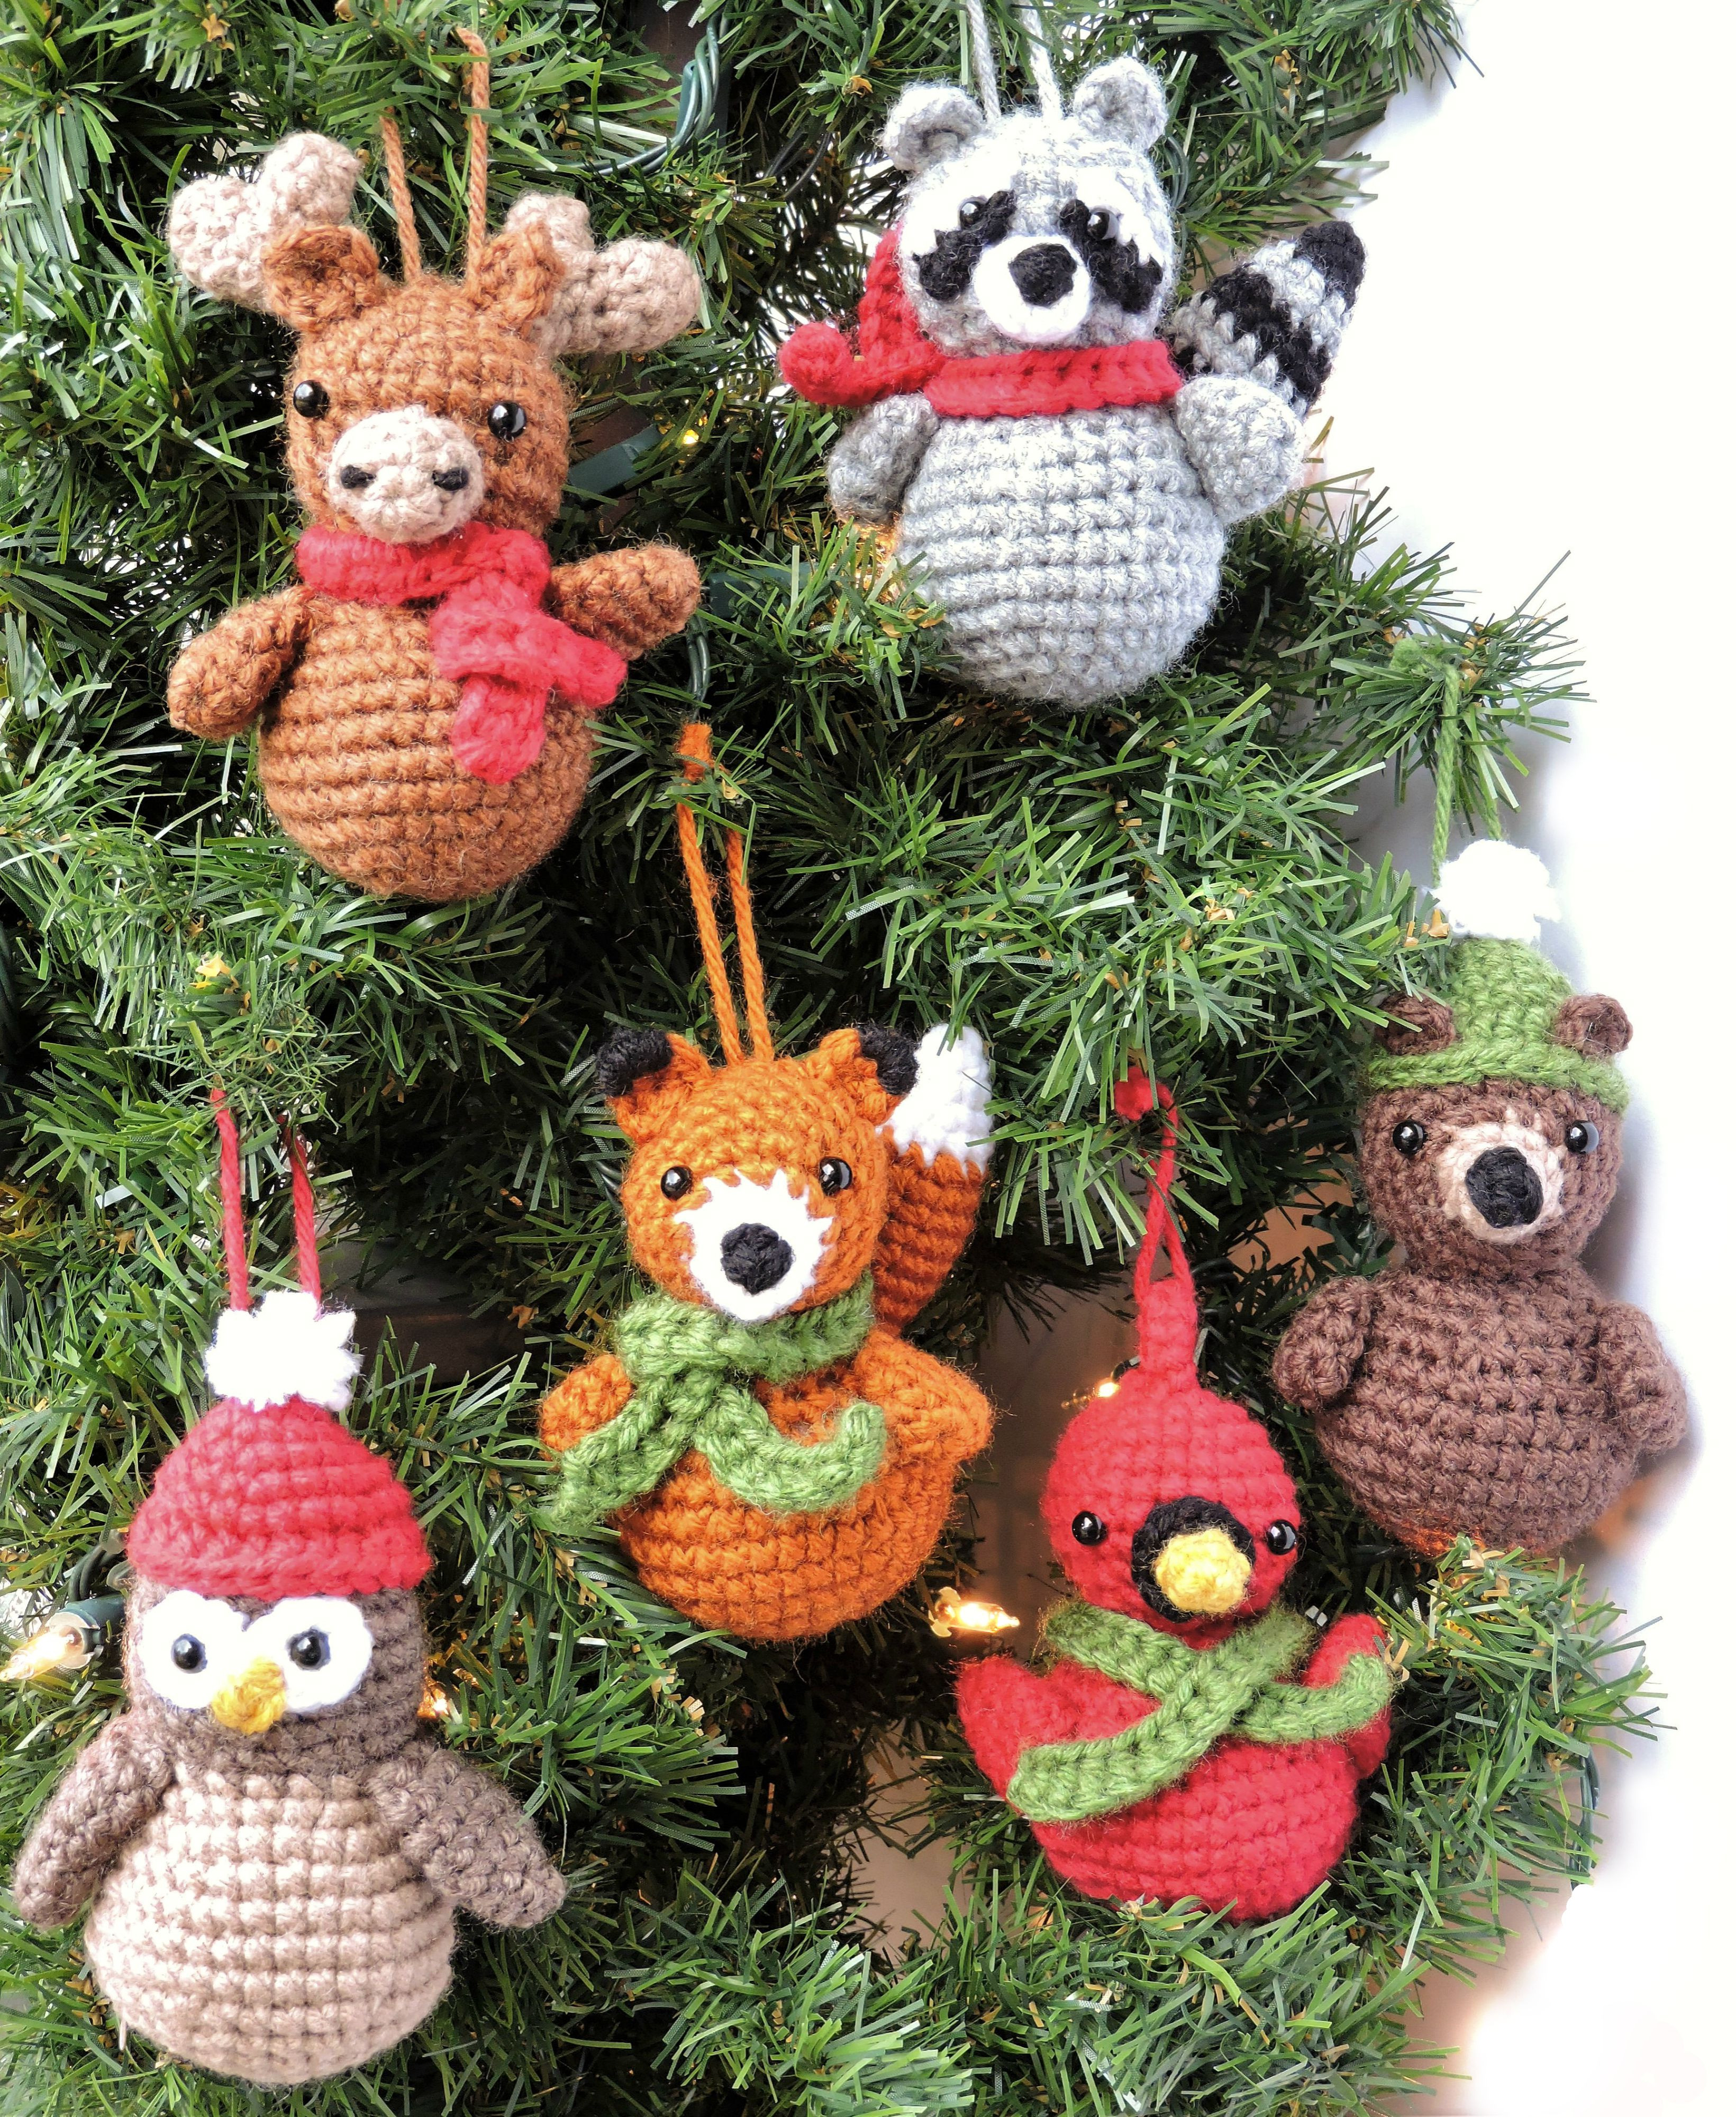 Awesome Woodland Animal ornaments Crochet Pattern Crochet Christmas ornaments Patterns Of Unique 47 Pics Crochet Christmas ornaments Patterns